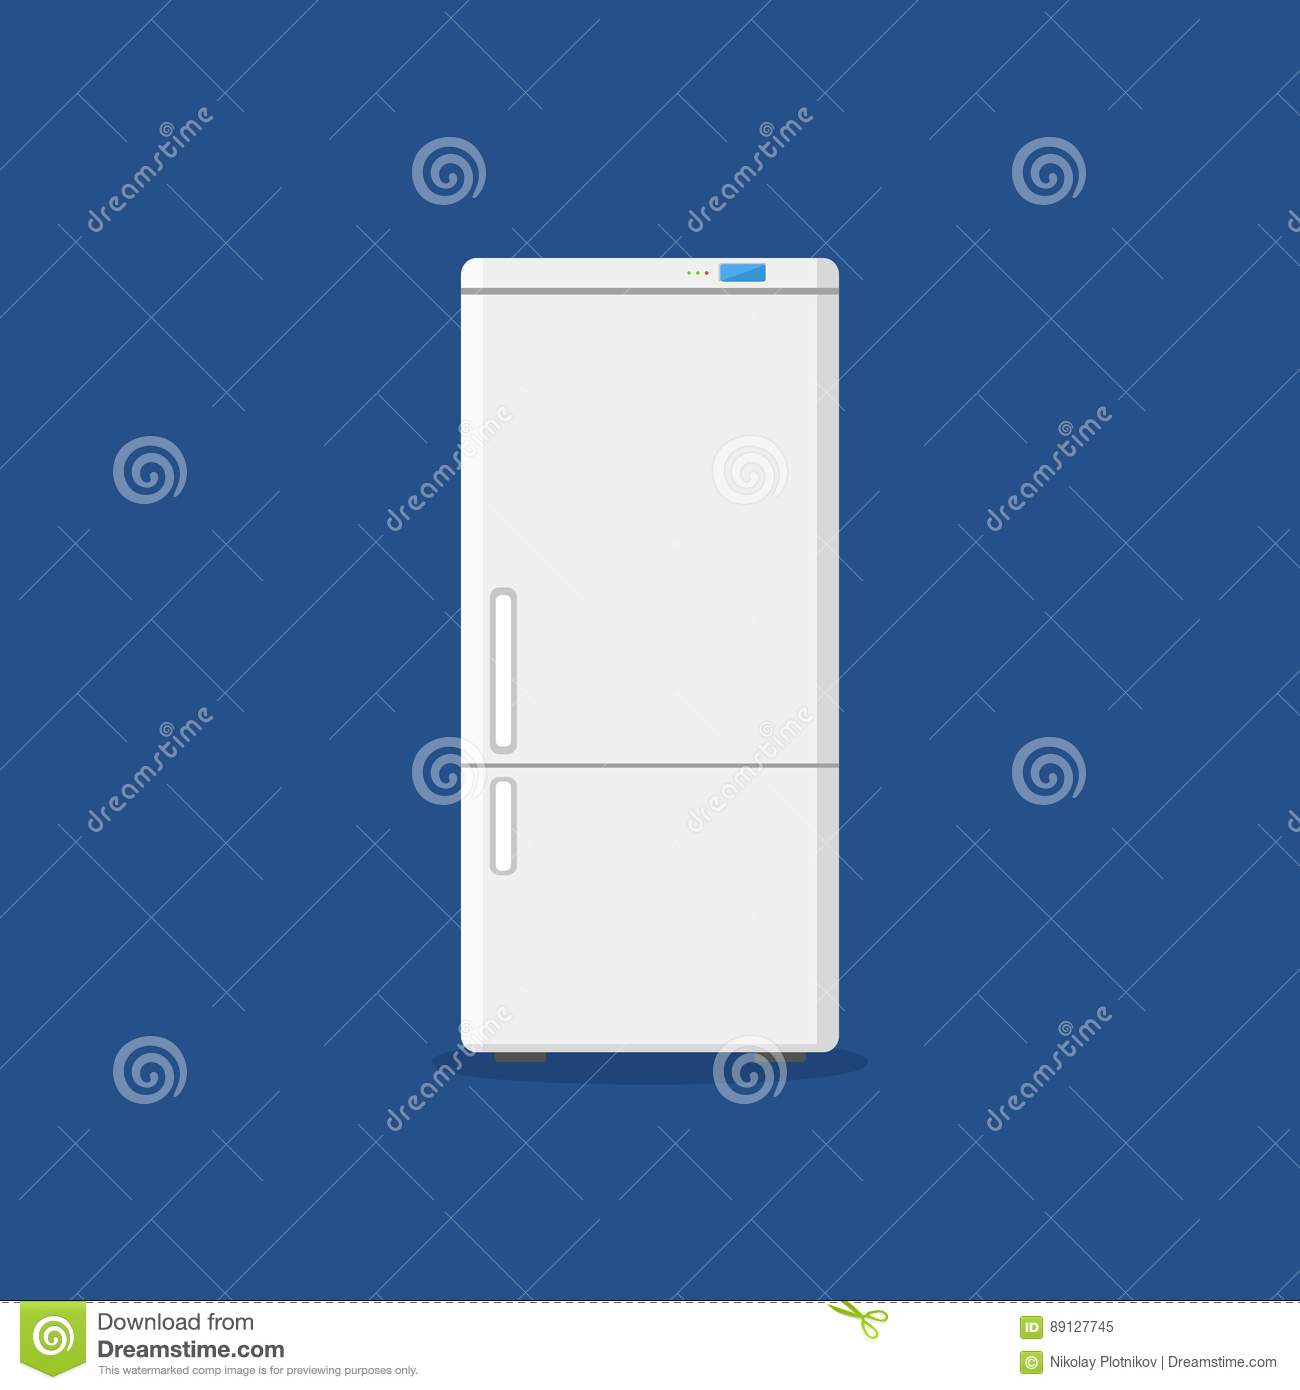 Appliance Diagram Background Wiring Fuse Box For Household Appliances Fridge Isolated On Blue Electronic Rh Dreamstime Com Pvm1790sr1ss Parts Of A Microwave